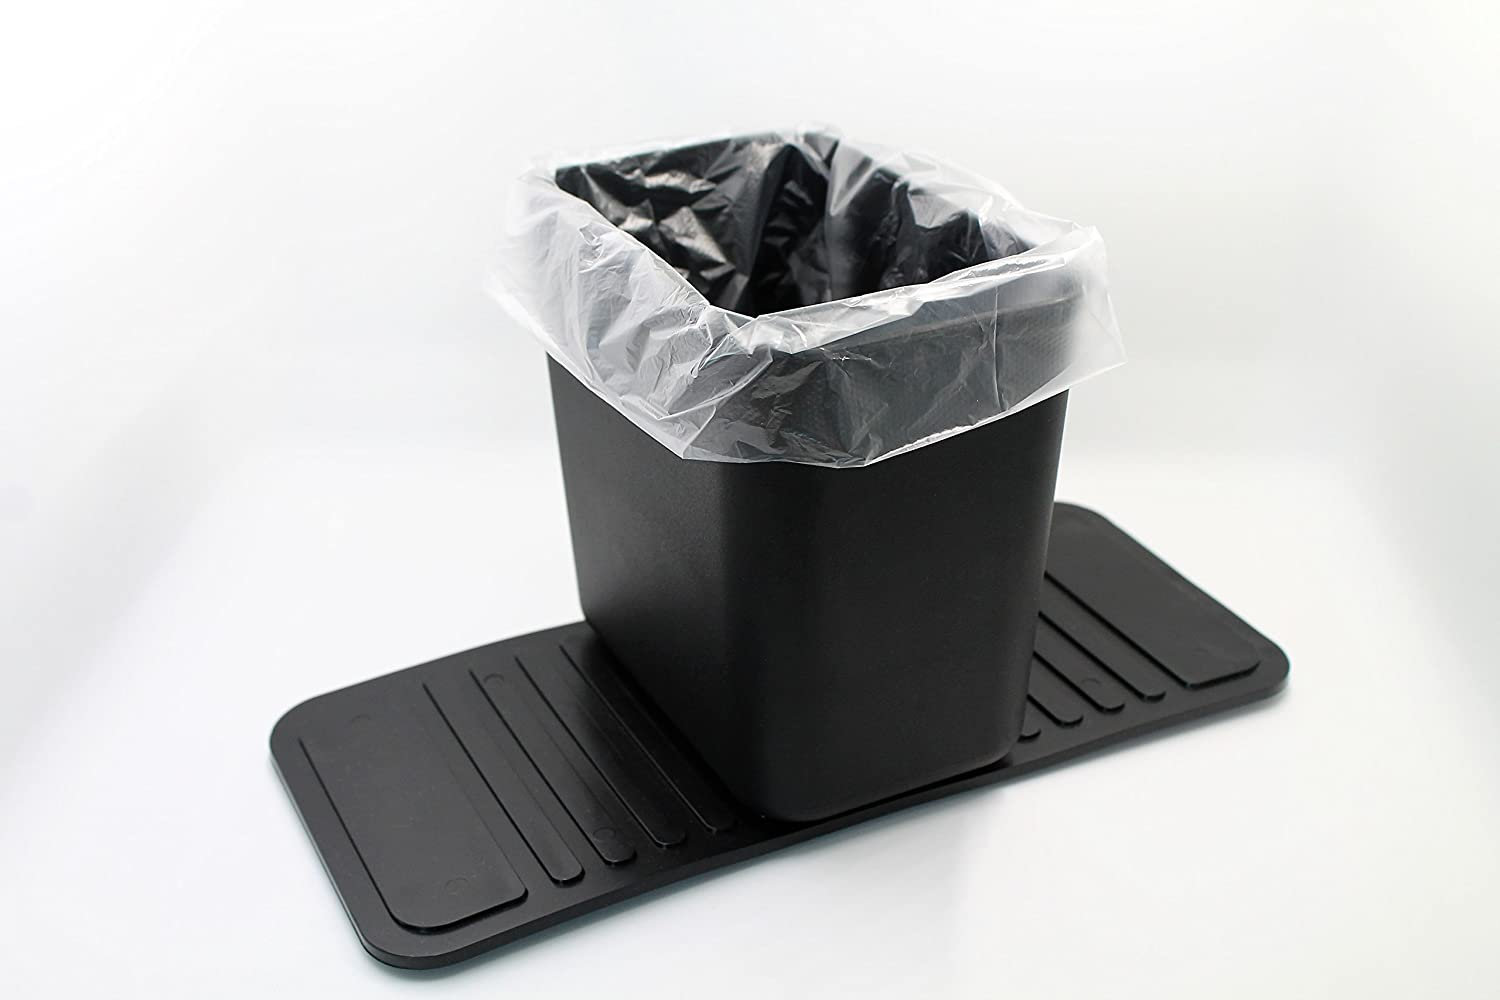 Meistar Auto Garbage Car Trash can Bin Waste Container Plastic with 20 Free Disposable Bags!!! Product Dimensions: 3.9'' x 5.9'' x 5.5''. Base: 11'' x 5'' Meistar Global